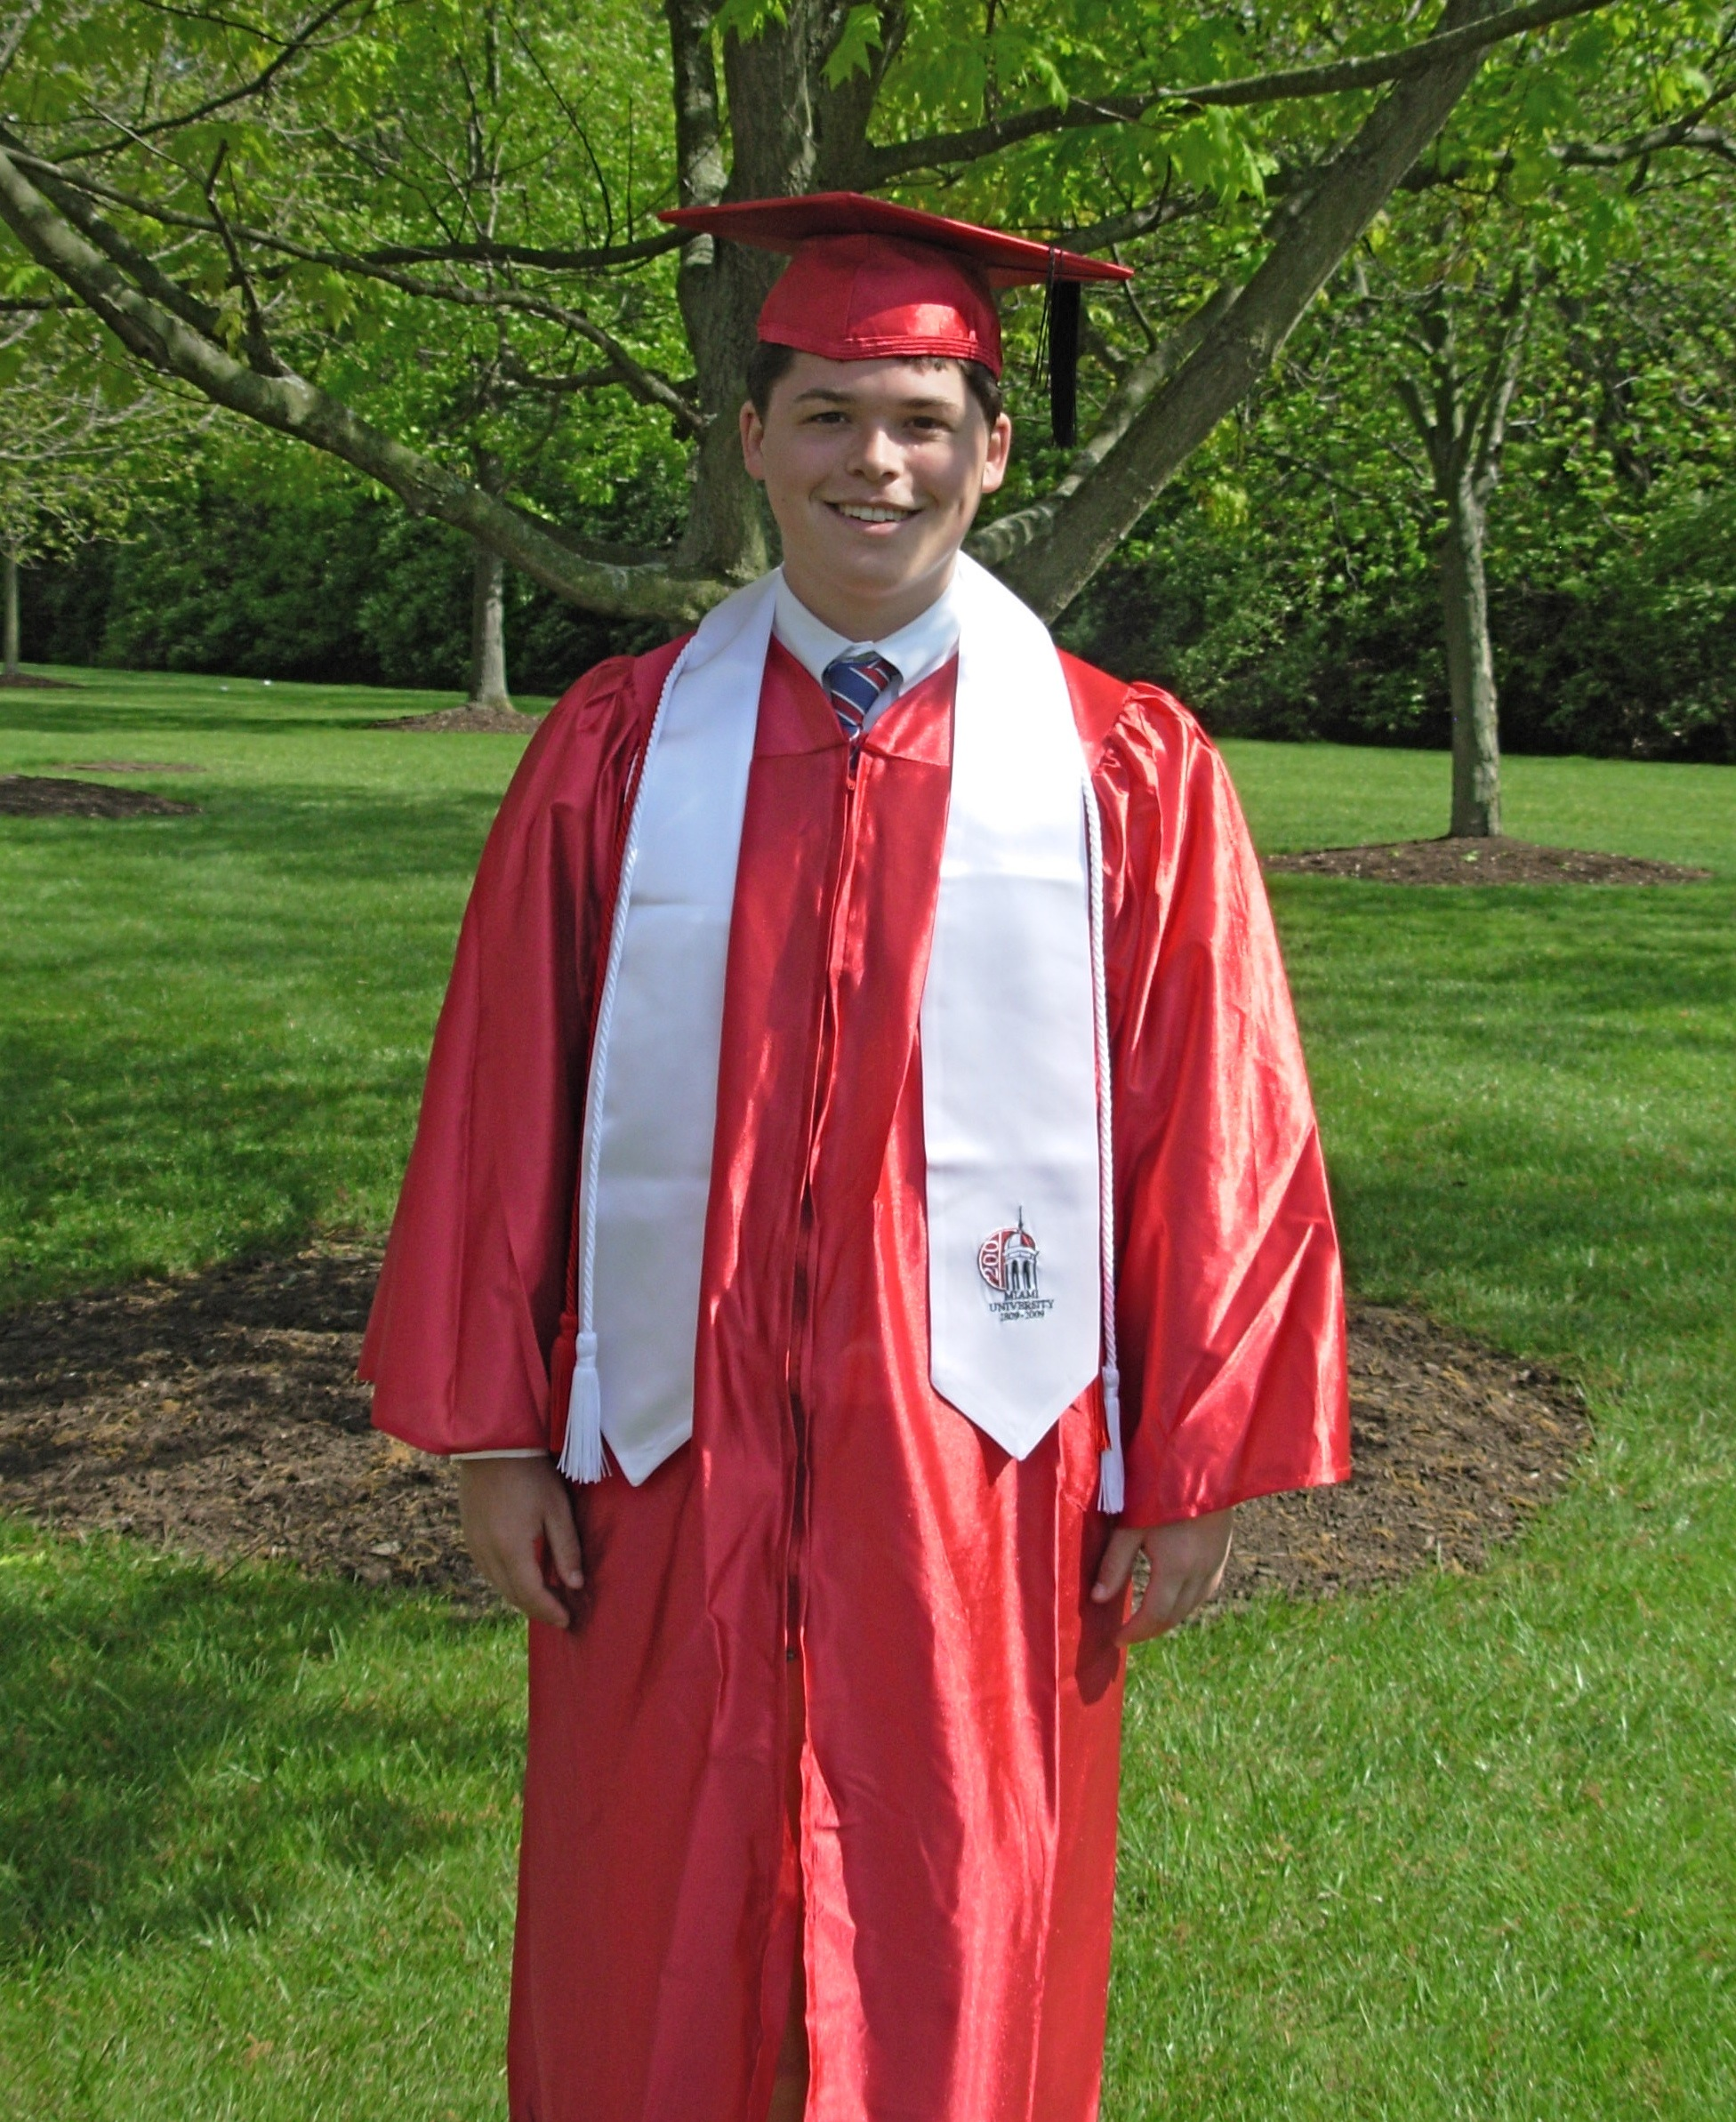 Andrew after graduation